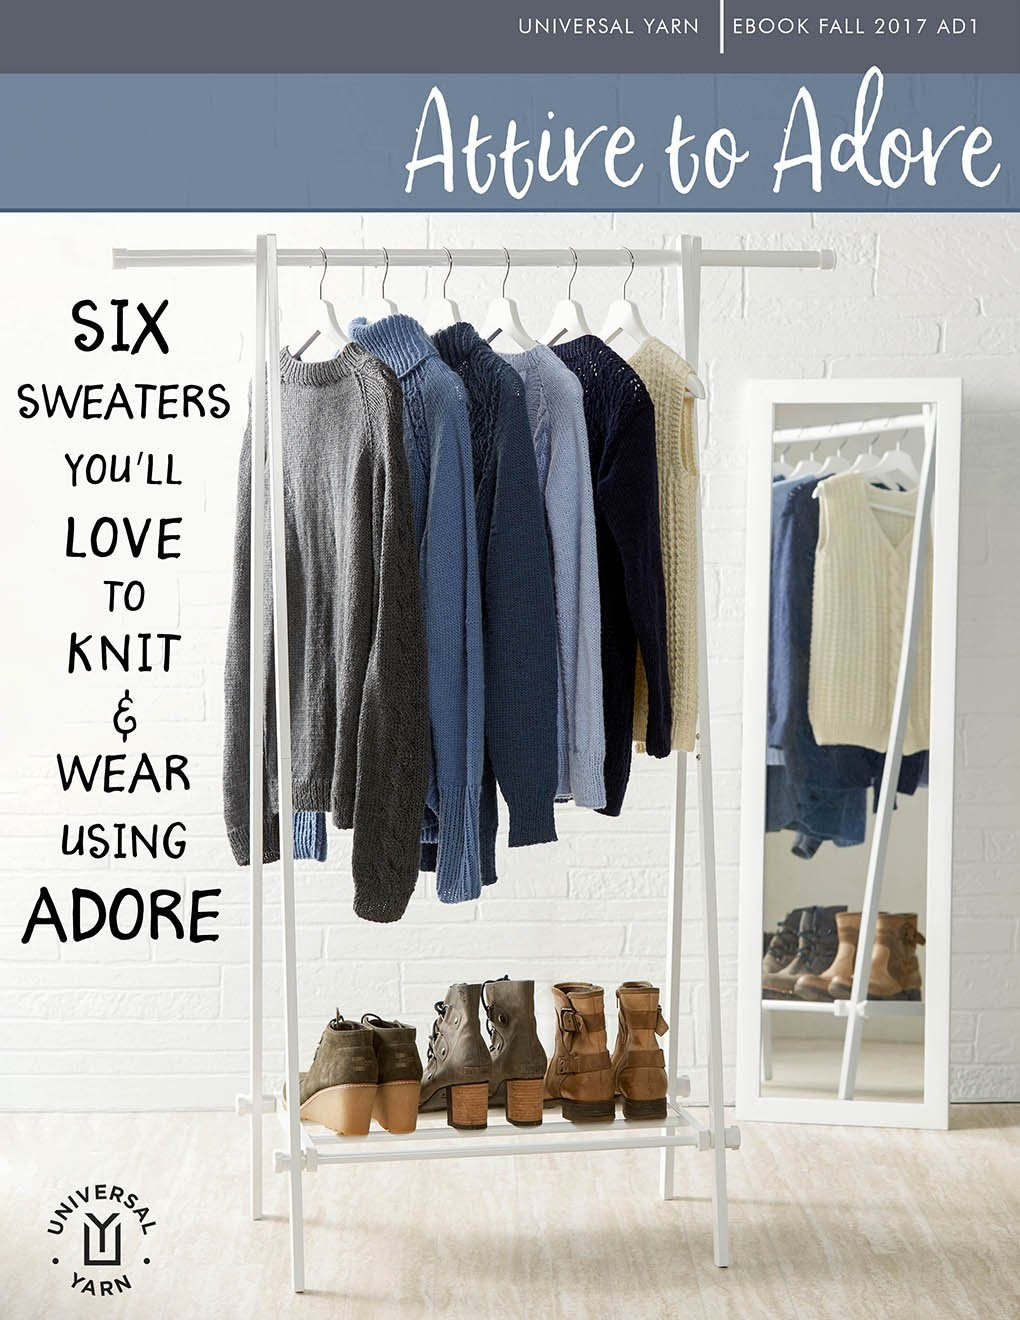 Attire to Adore Pattern Universal Yarn